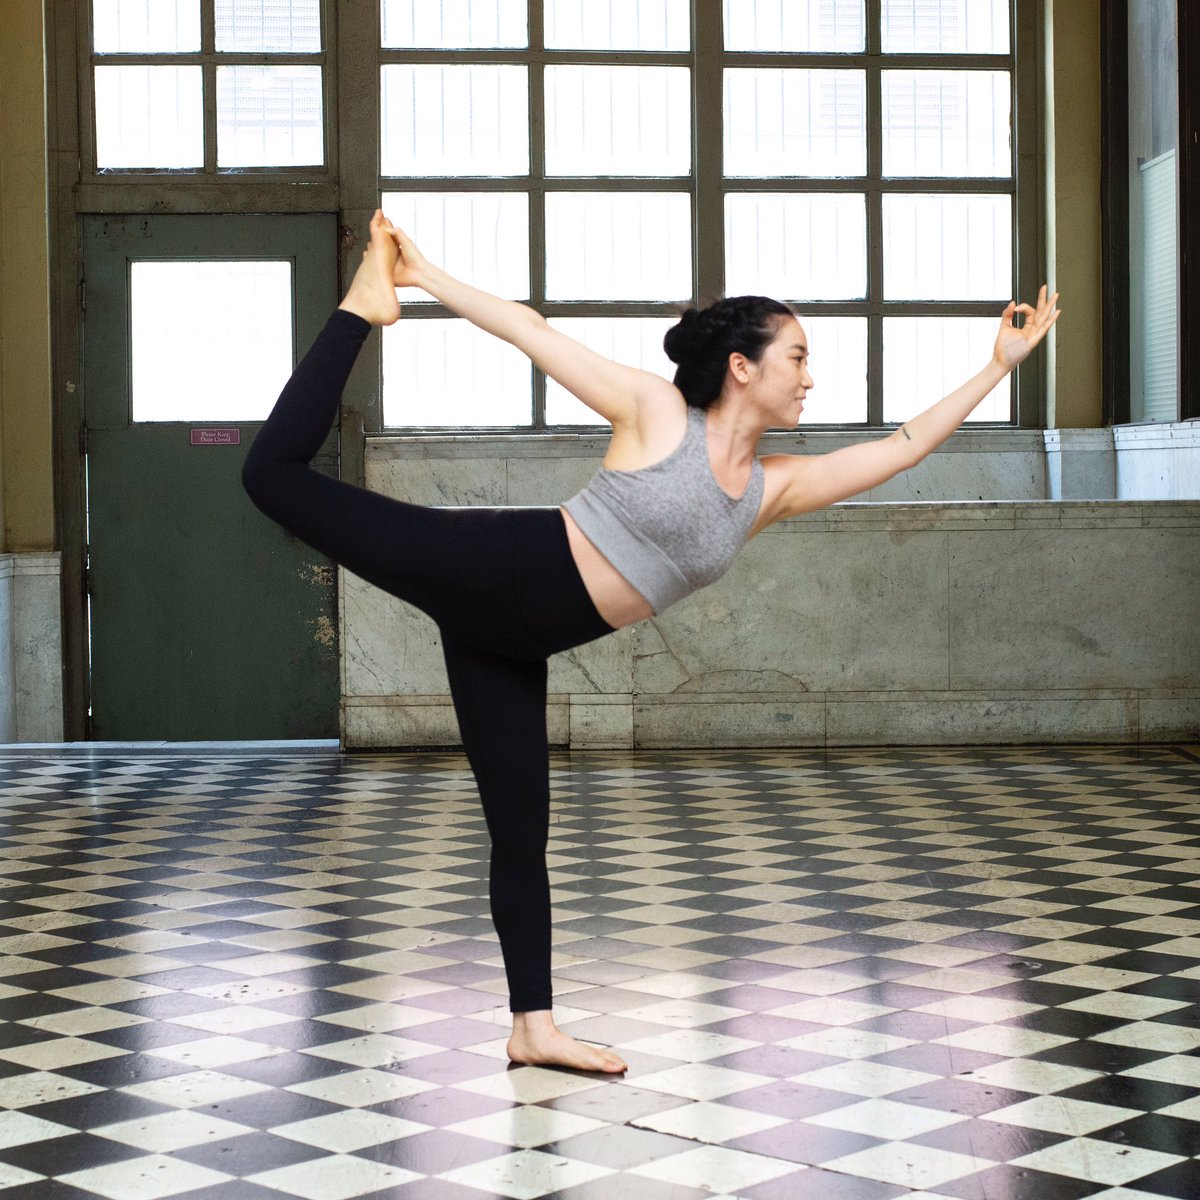 """""""Life is the dancer, and you are the dance."""" - Eckhart Tolle   #natarajasana #liveyourbestlife #yogaeverydamnday<br>http://pic.twitter.com/6BSRP3VIEX"""